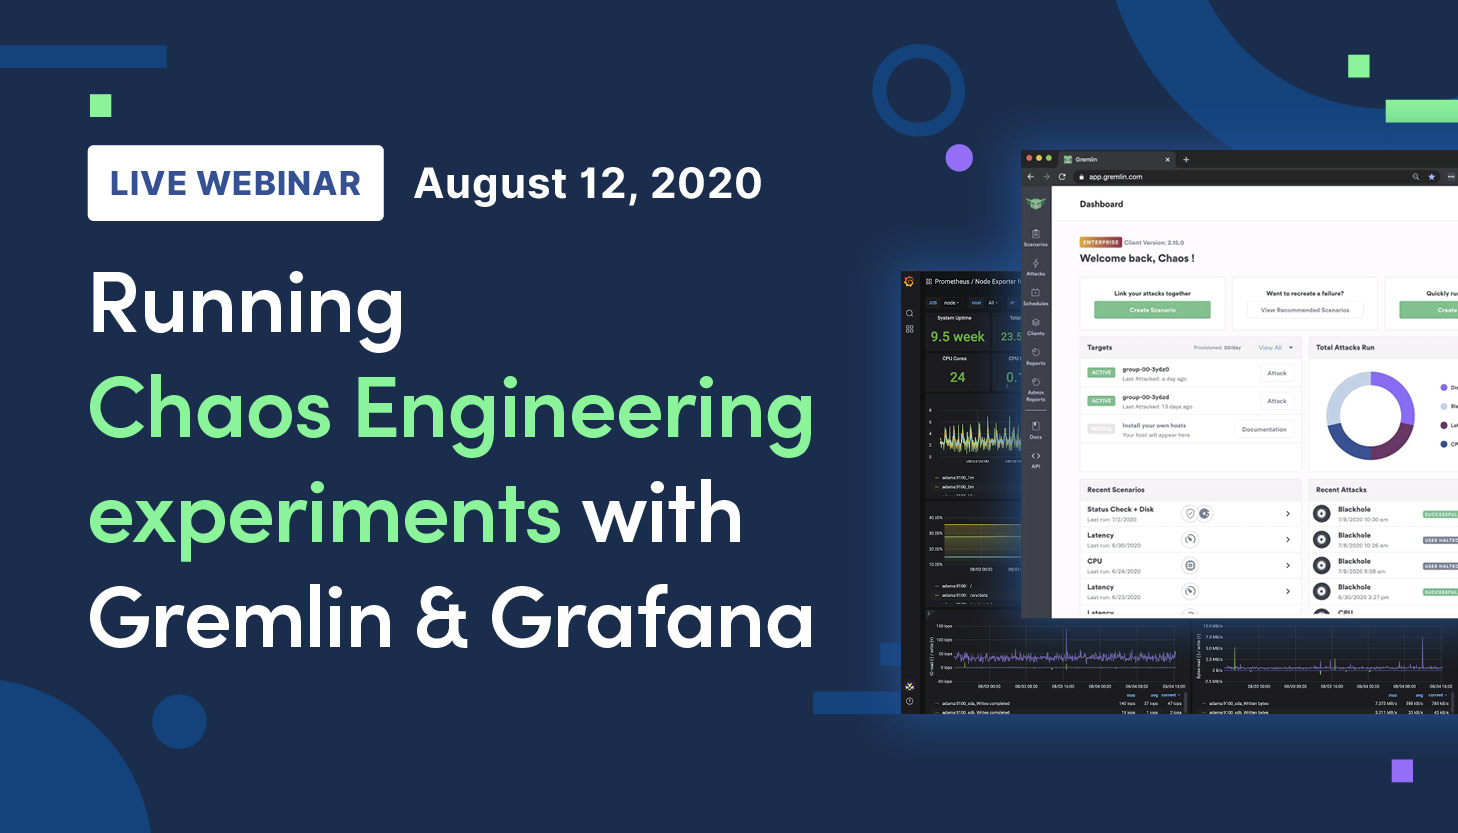 Running Chaos Engineering experiments with Gremlin and Grafana